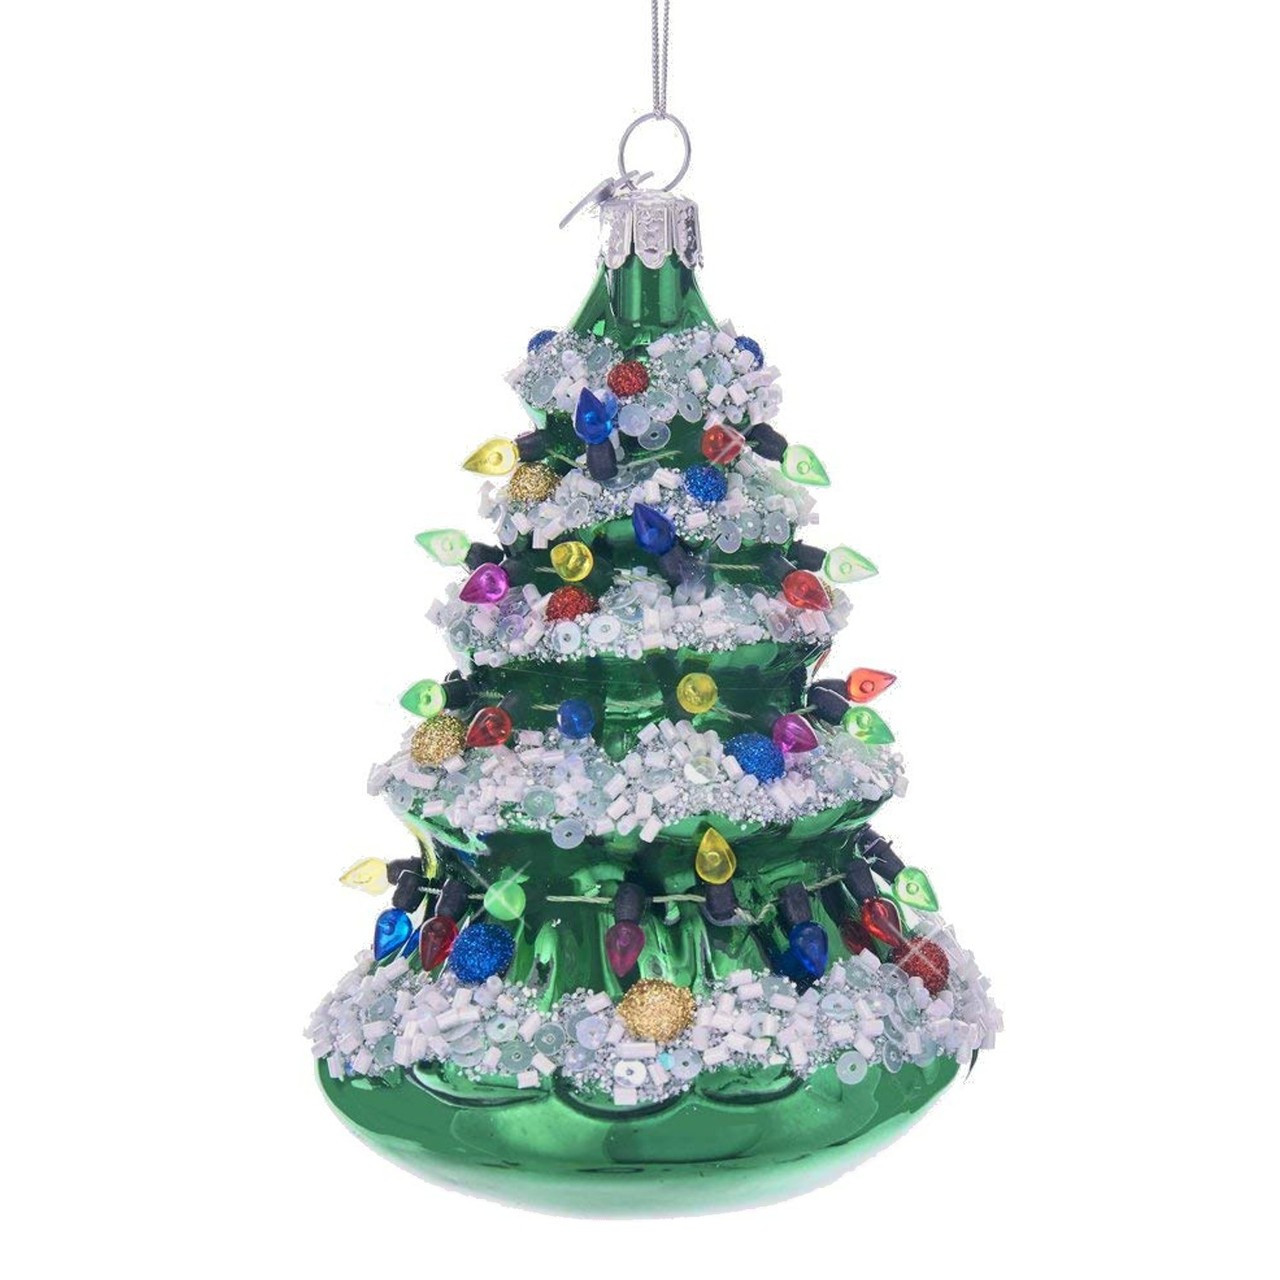 Old Fashioned Christmas Pictures.Glass And Glitter Old Fashioned Christmas Tree Ornament 5 Inches